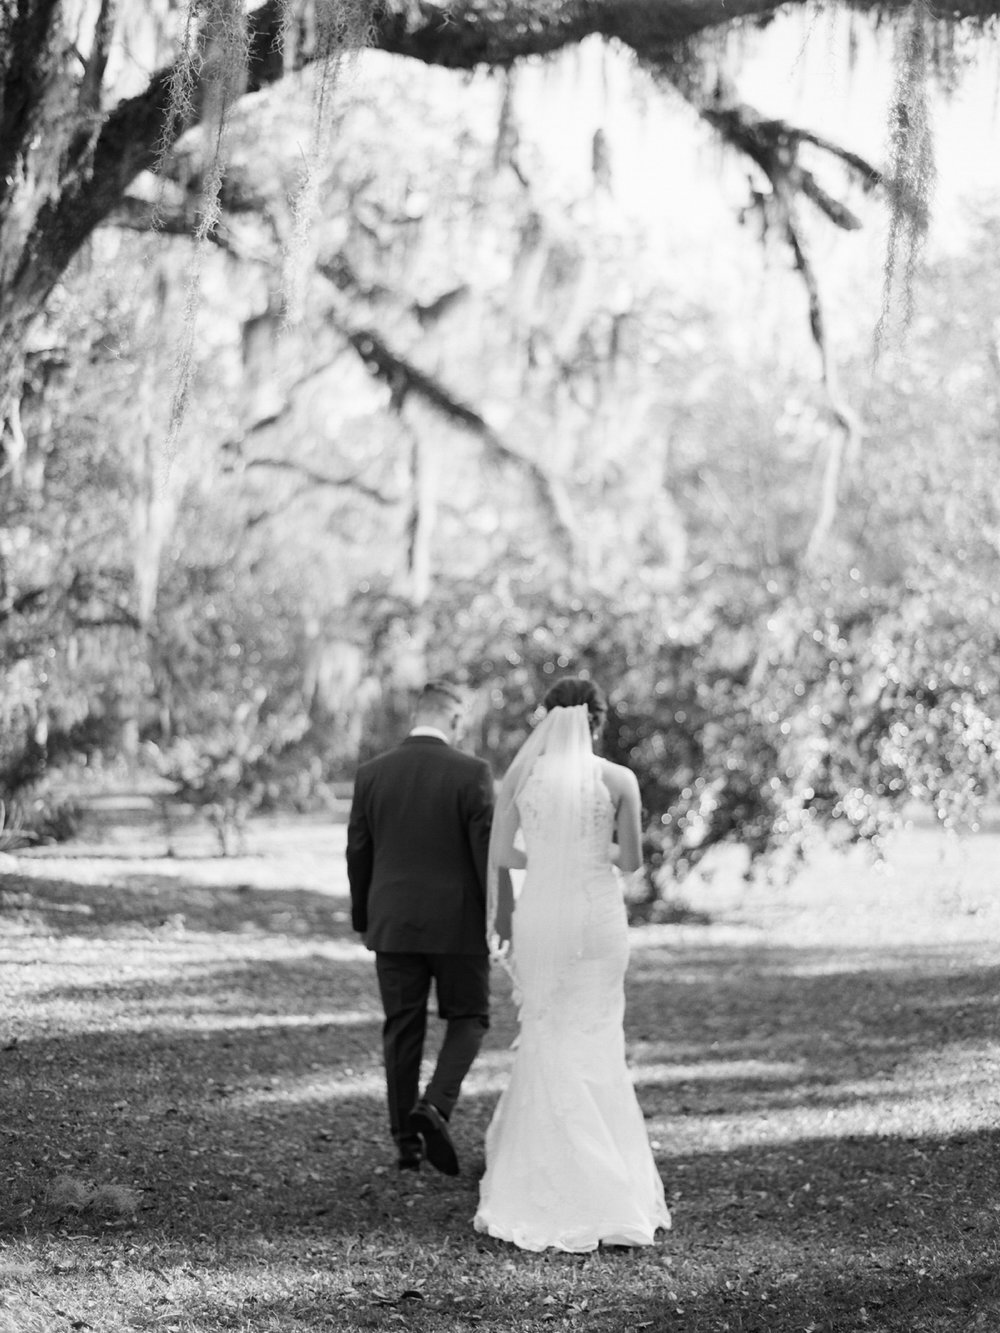 goodwood museum tallahassee wedding photographer - tallahassee florida - shannon griffin_0024.jpg